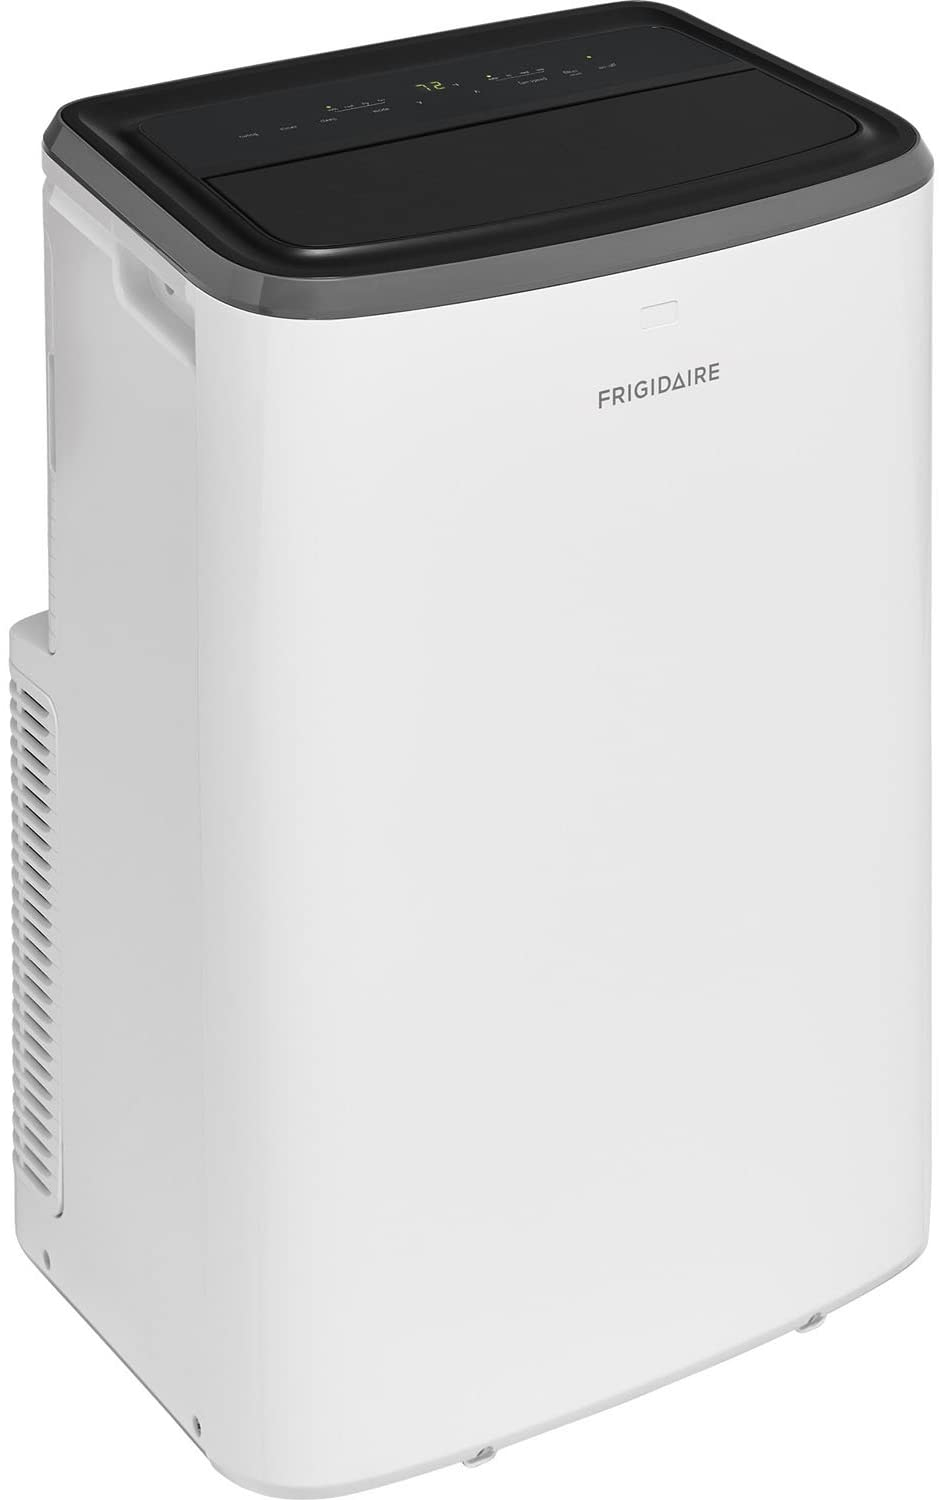 Frigidaire Portable Remote Control for Rooms up to 450-sq. ft. Air Conditioner